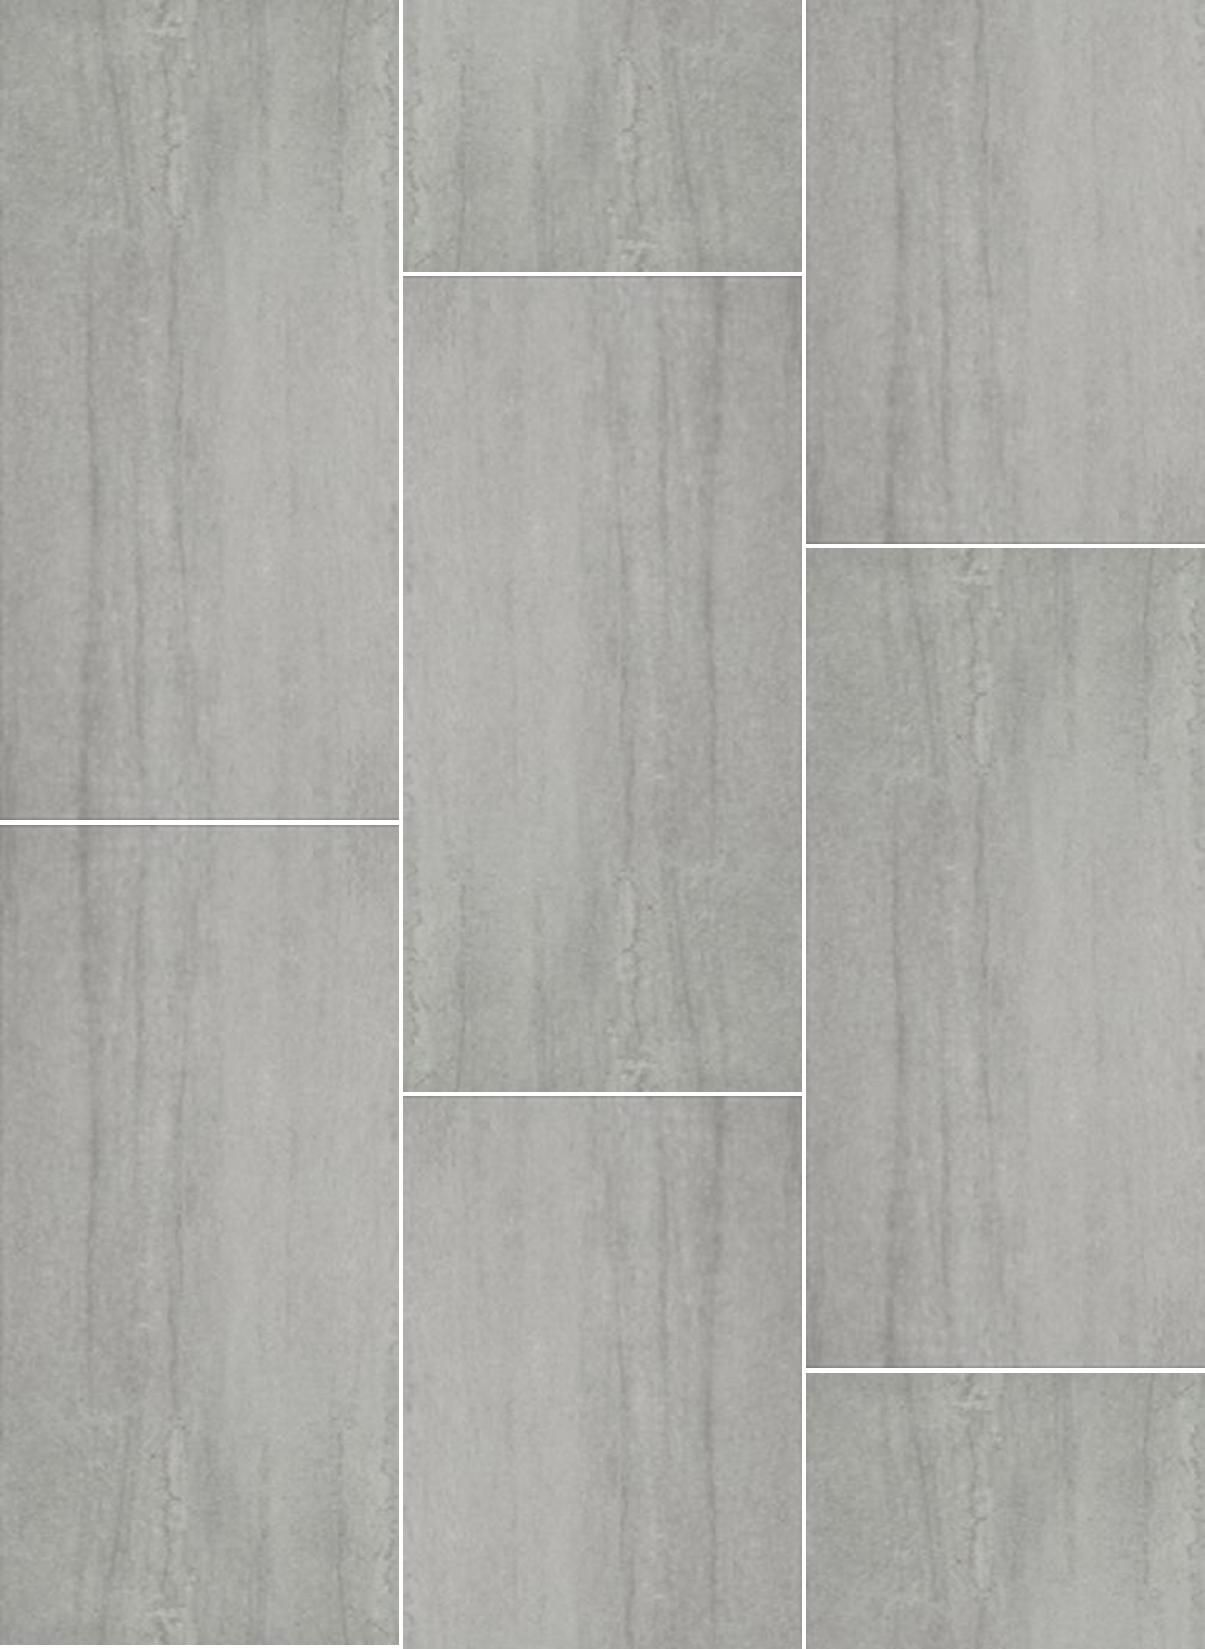 101 Reference Of Ceramic Floor Tile Texture Cheap Diy Grey Floor Tiles Grey Slate Floor Tiles Grey Flooring